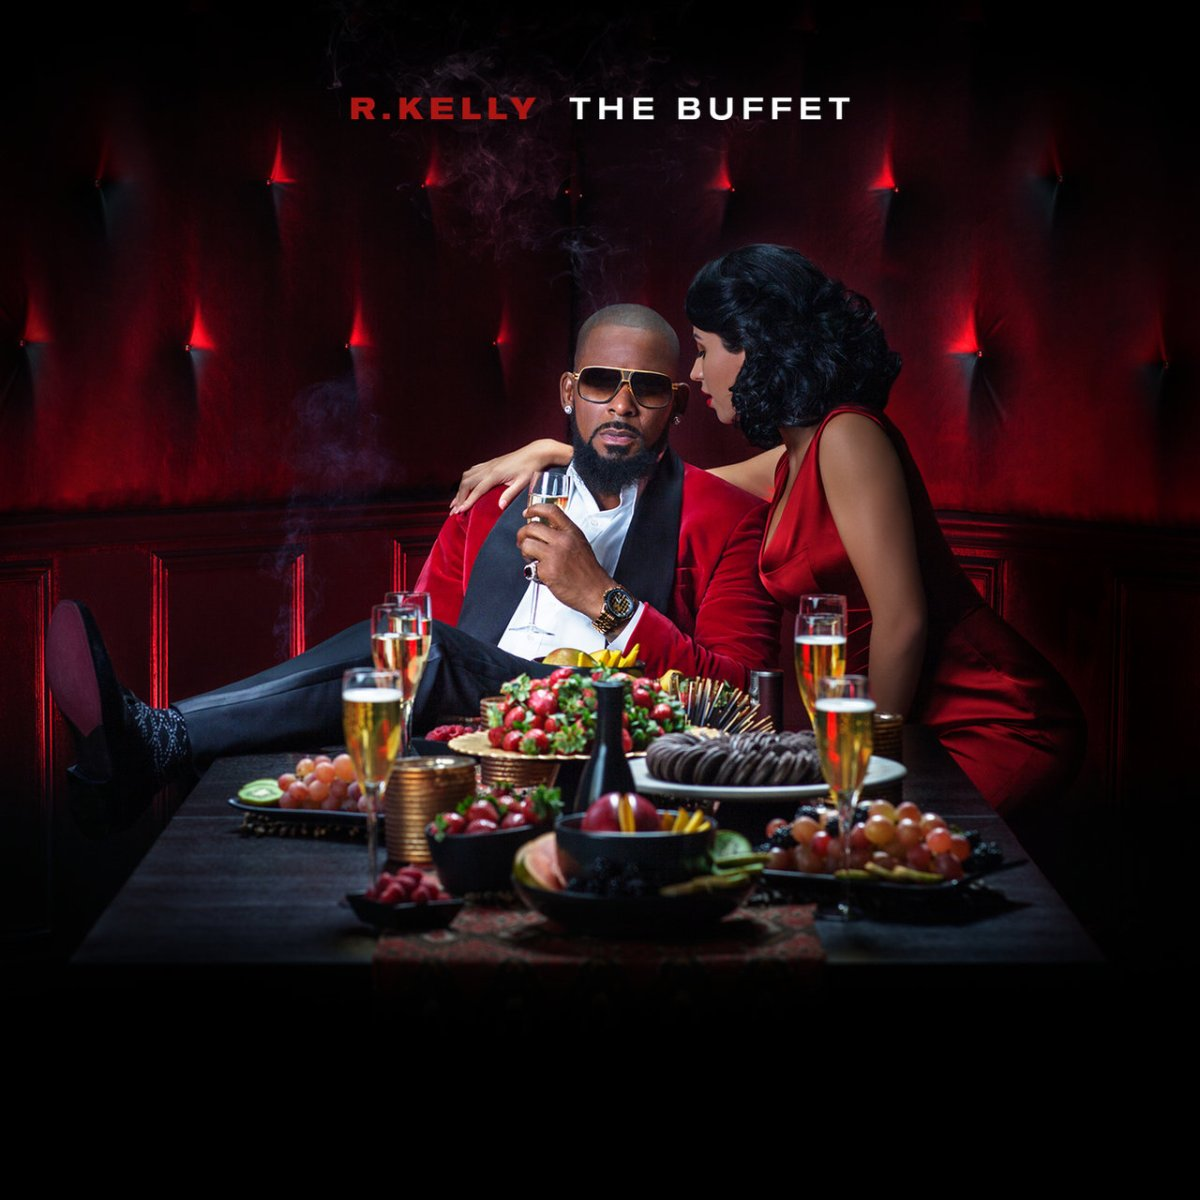 R. Kelly - The Buffet (Deluxe Edition Cover)